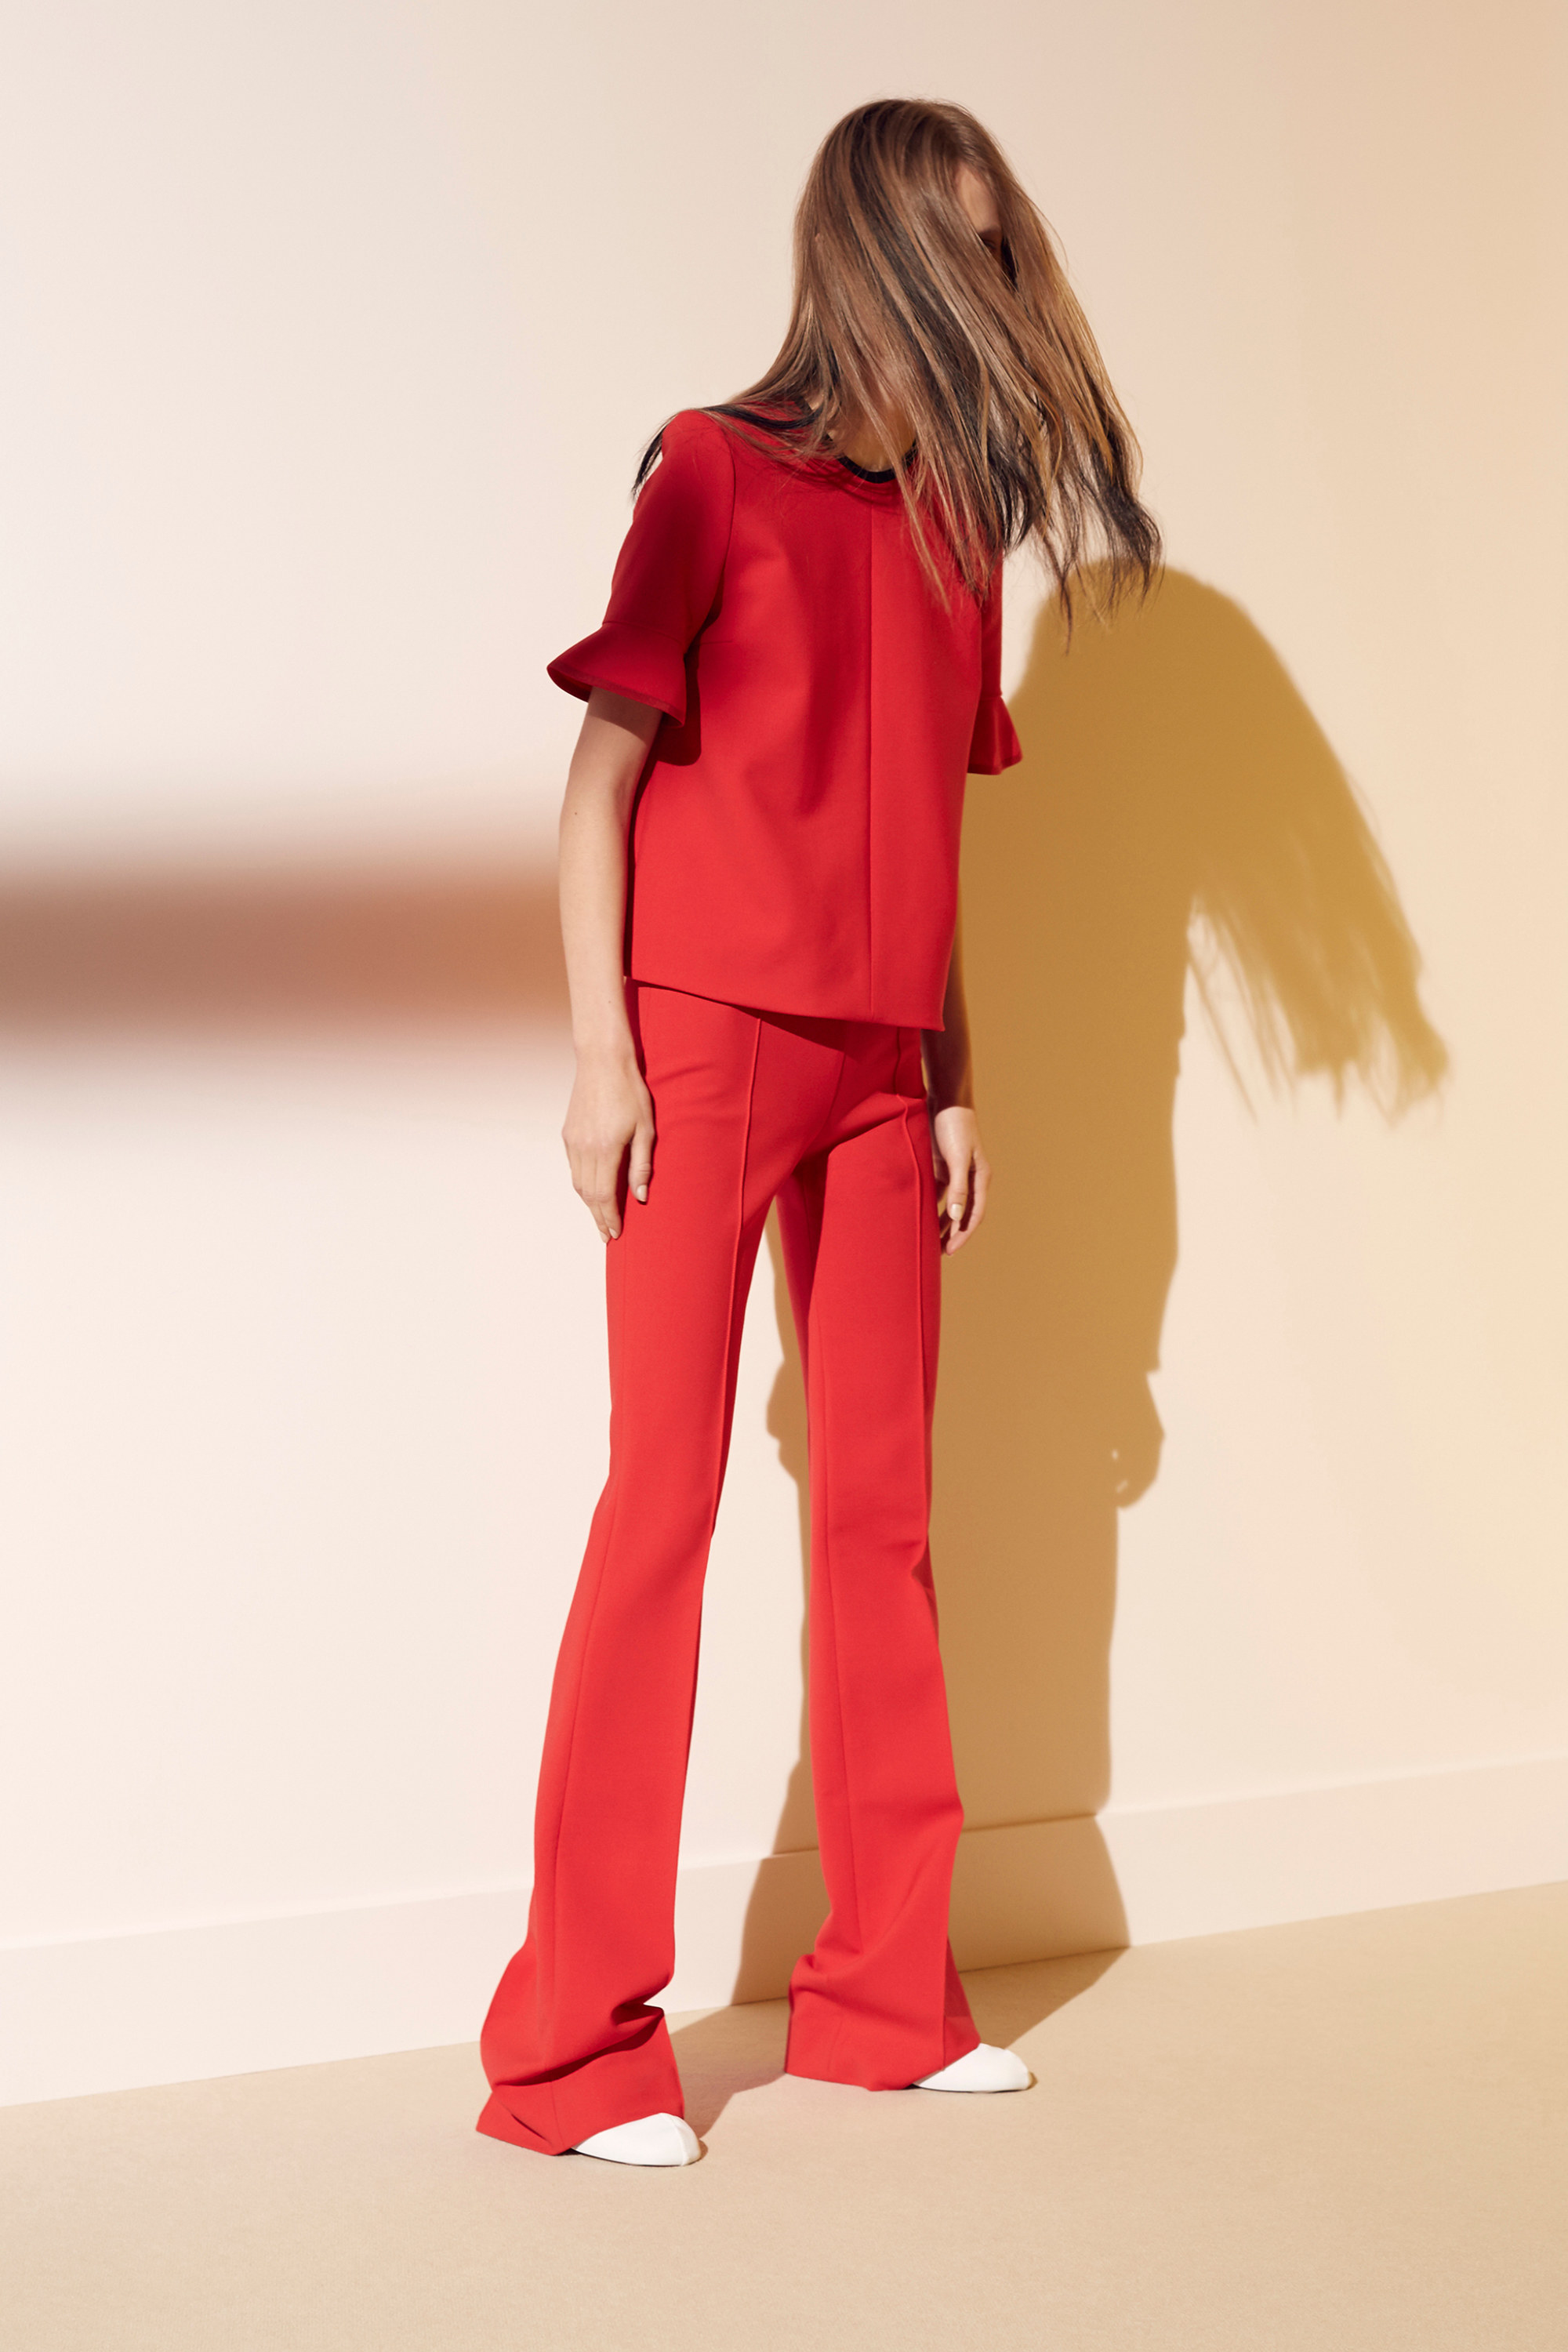 victoria-victoria-beckham-pre-fall-2016-lookbook-11.jpg